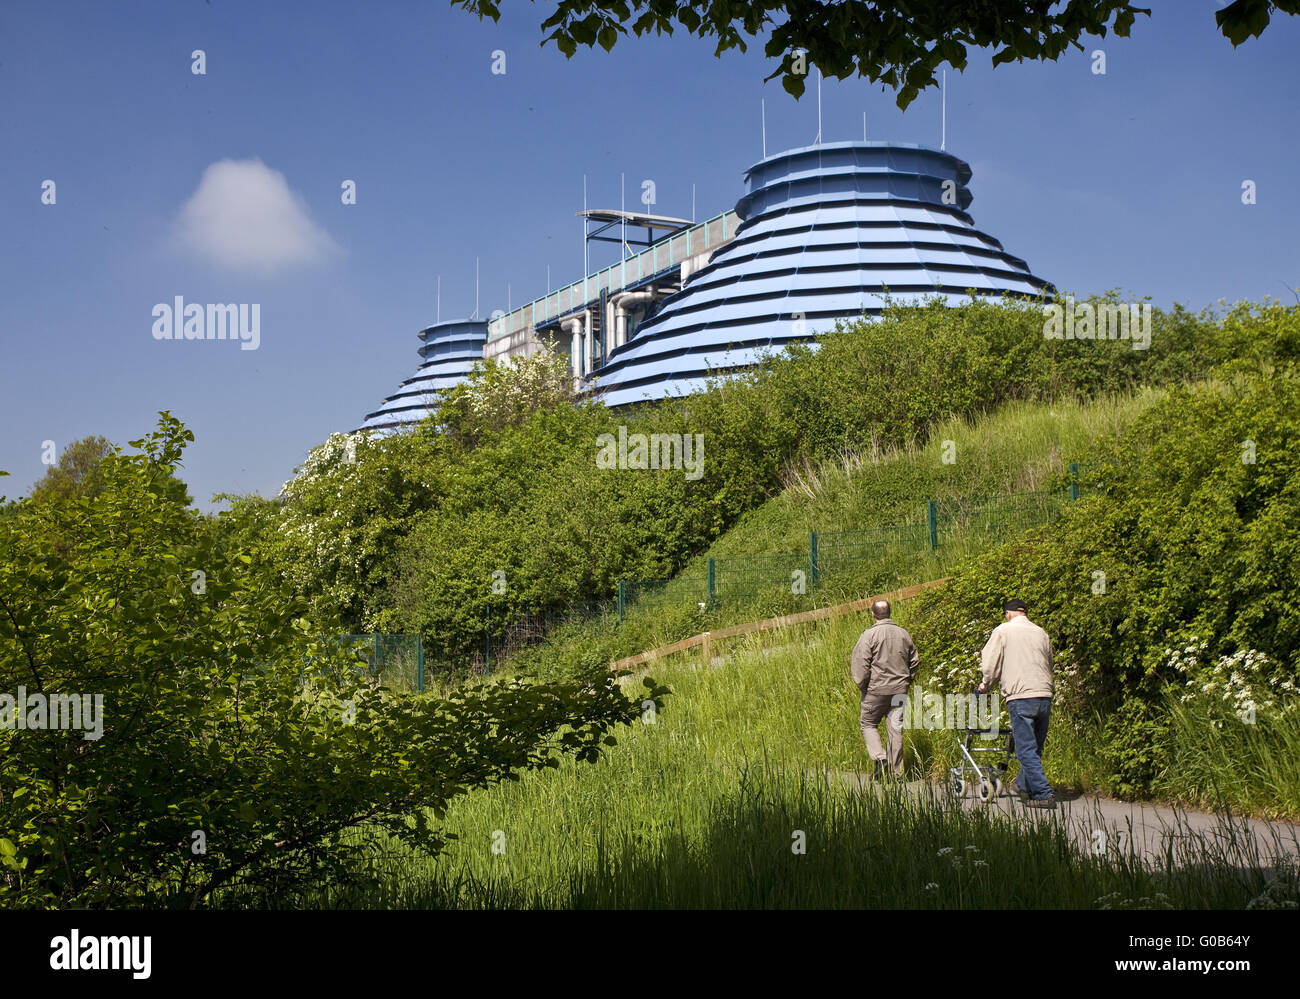 Two people at the treatment plant, Kamen, Germany - Stock Image